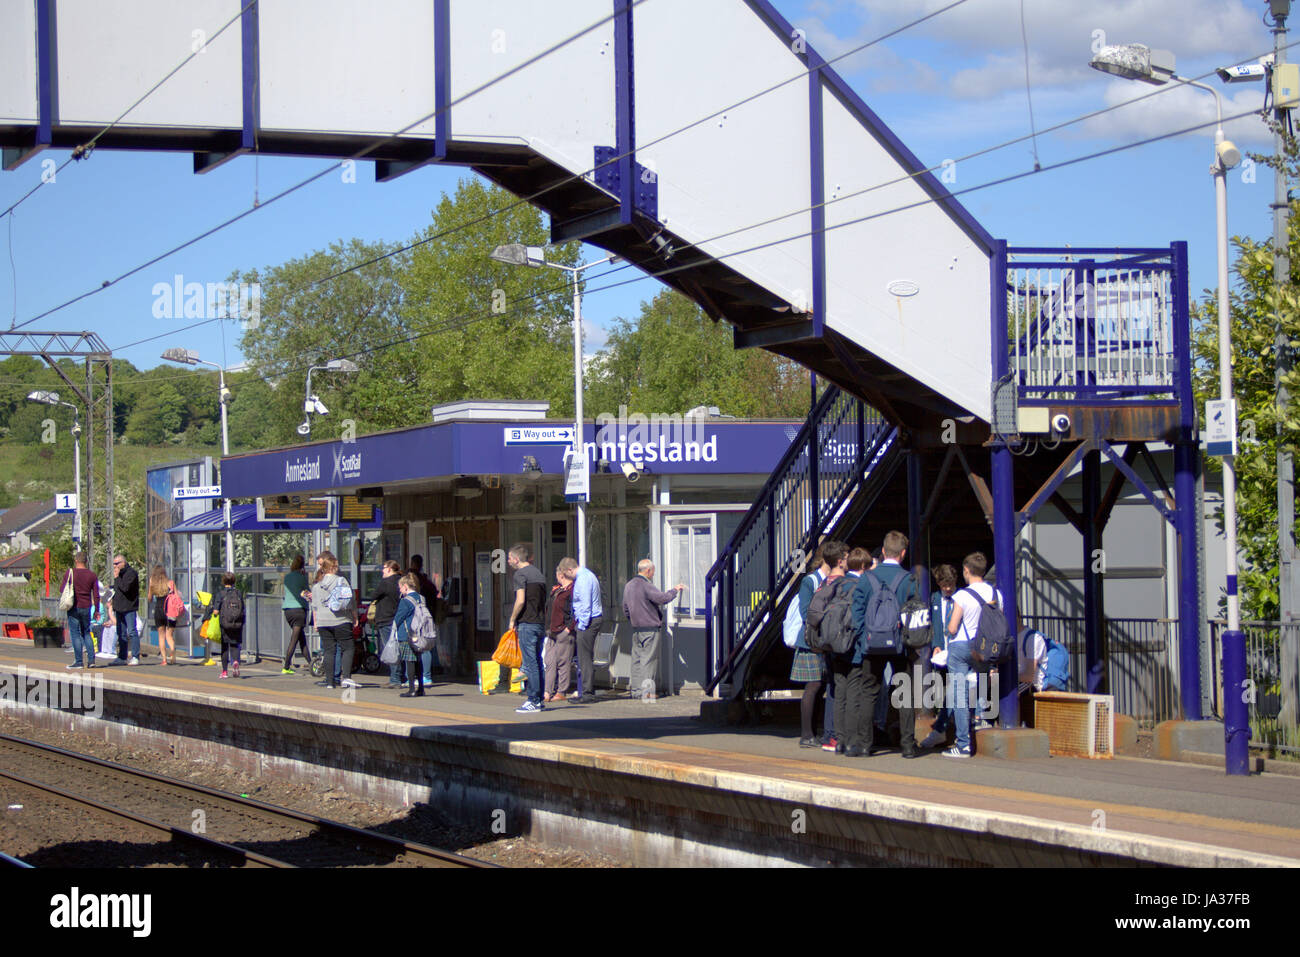 scotrail train station  station platform Annieslamd Glasgow - Stock Image